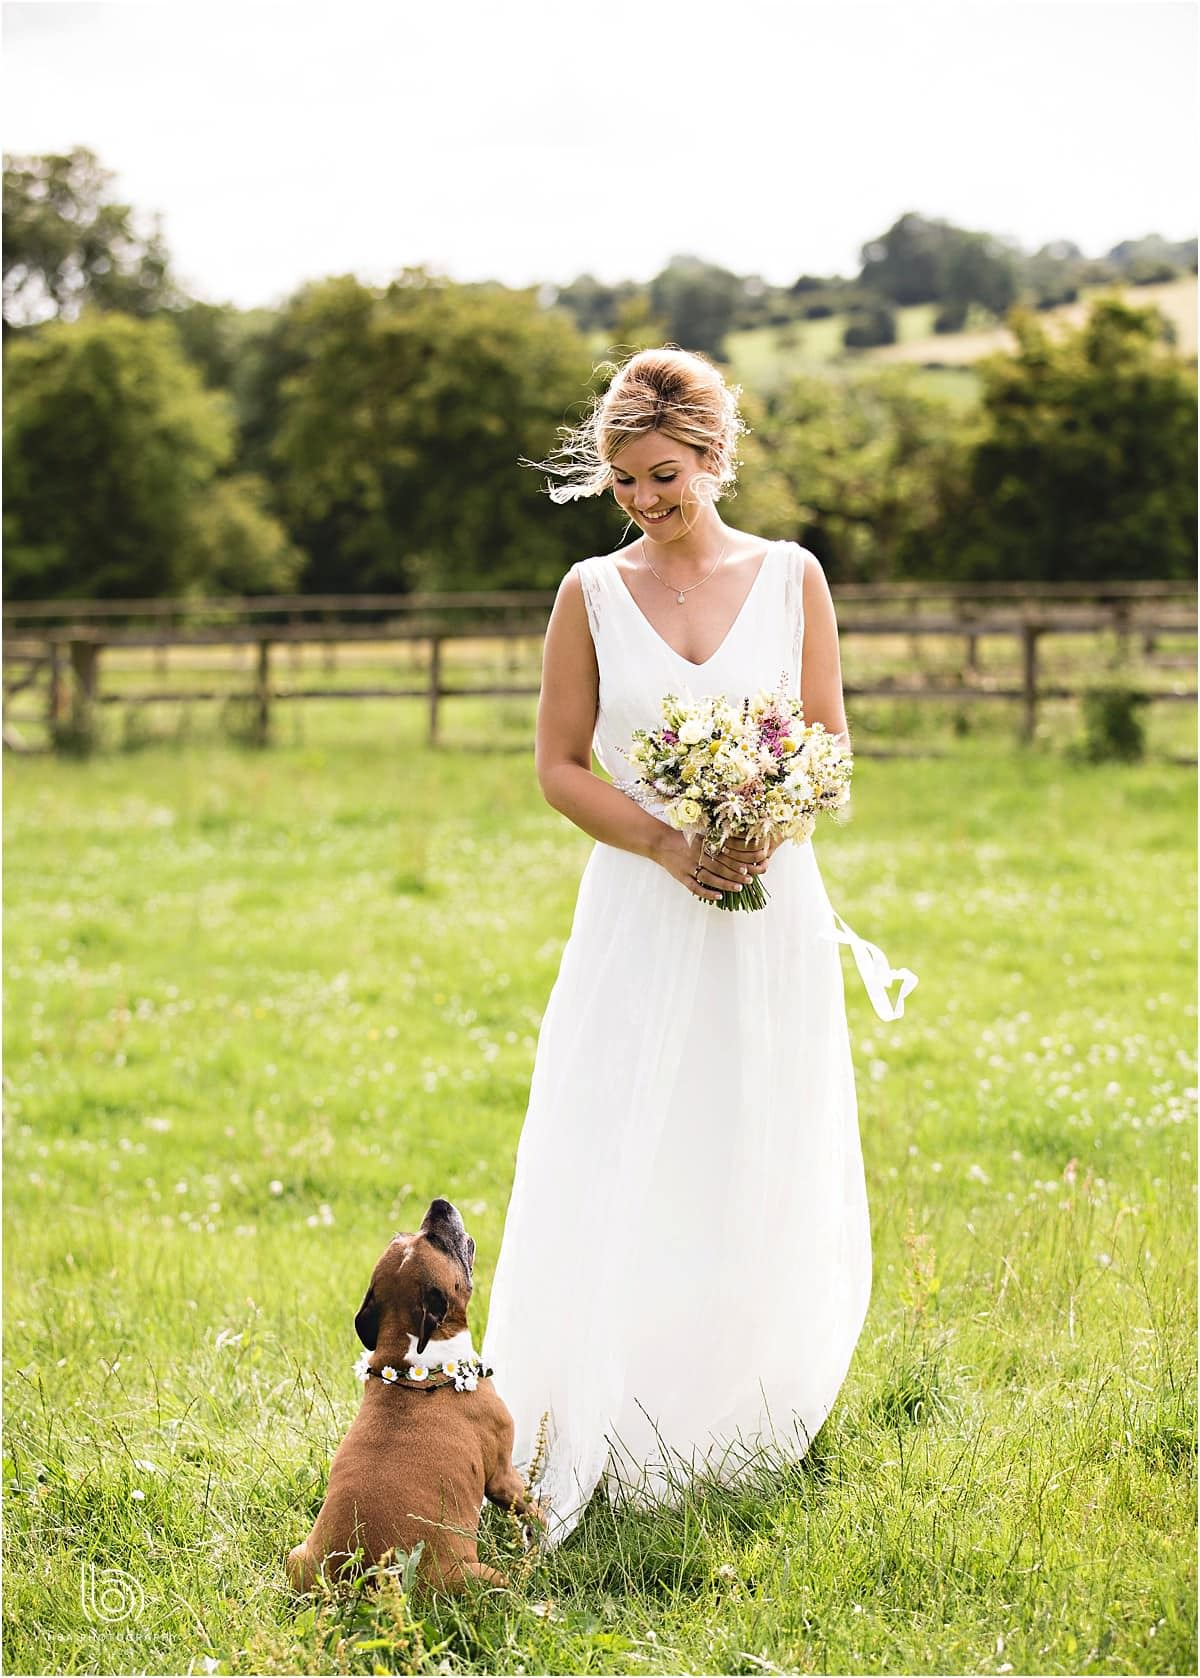 the bride and her dog in a meadow